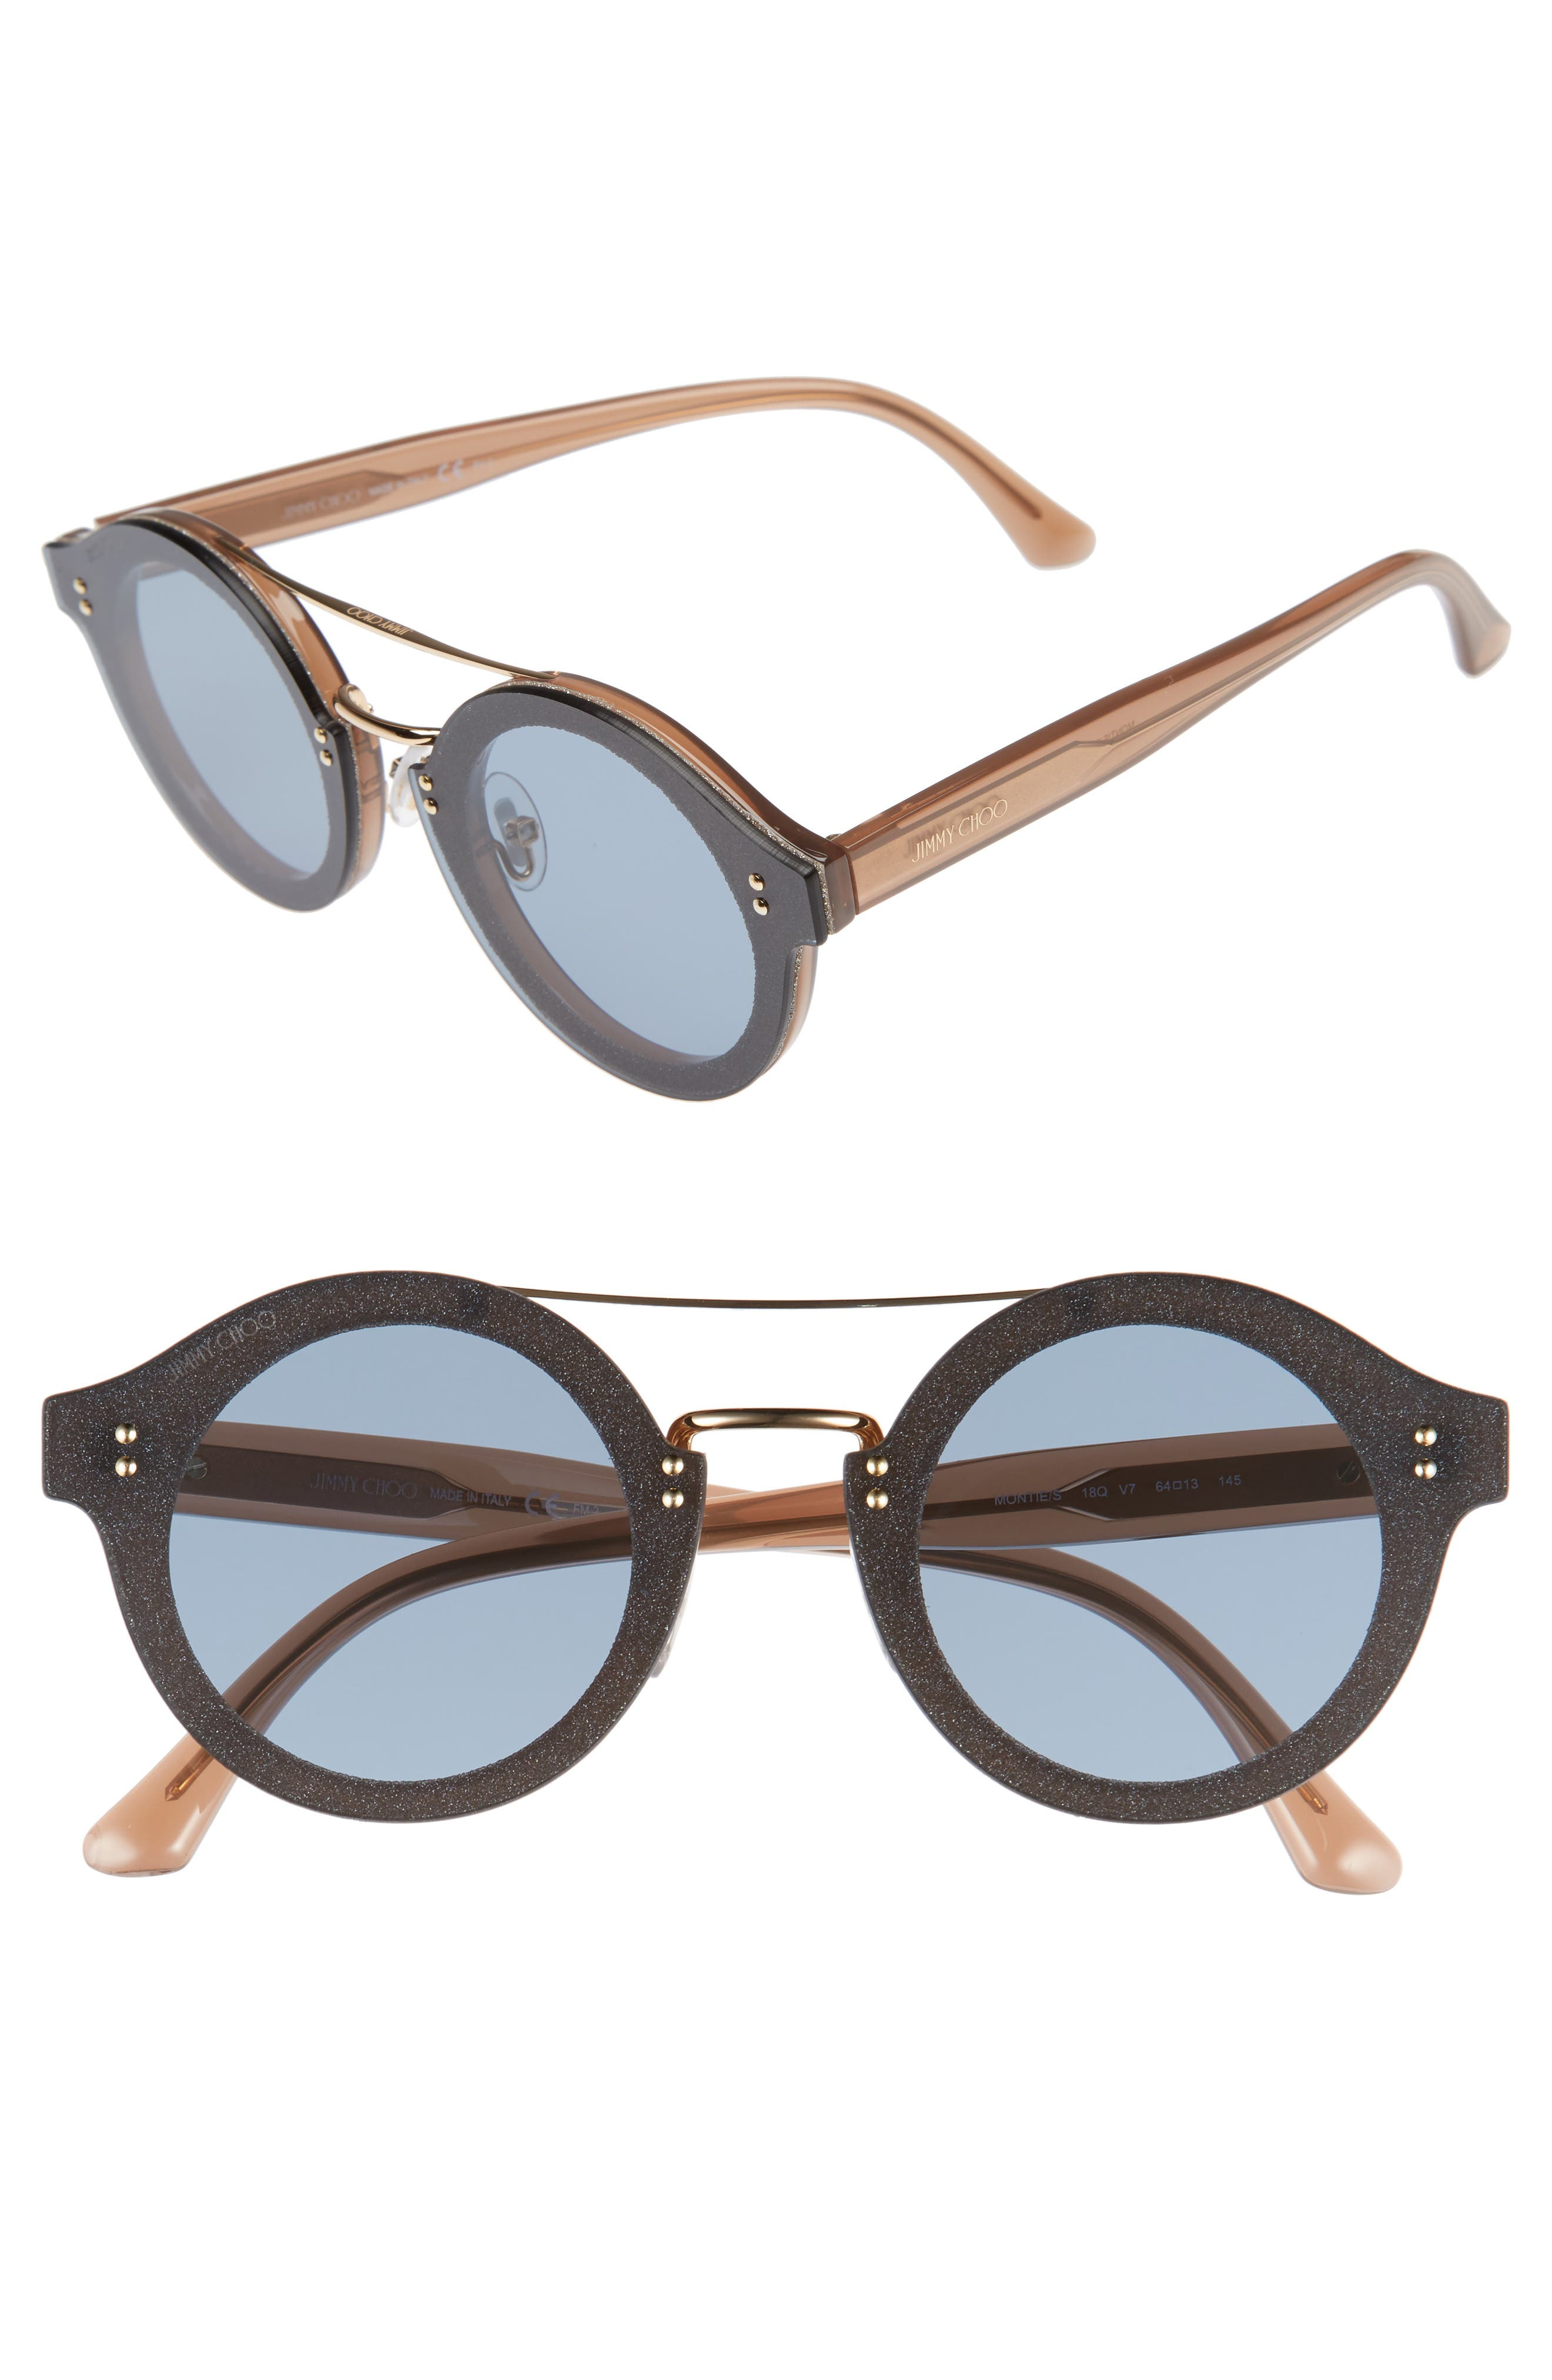 Monties 64mm Round Sunglasses,                         Main,                         color, Nude/ Glitter/ Gold